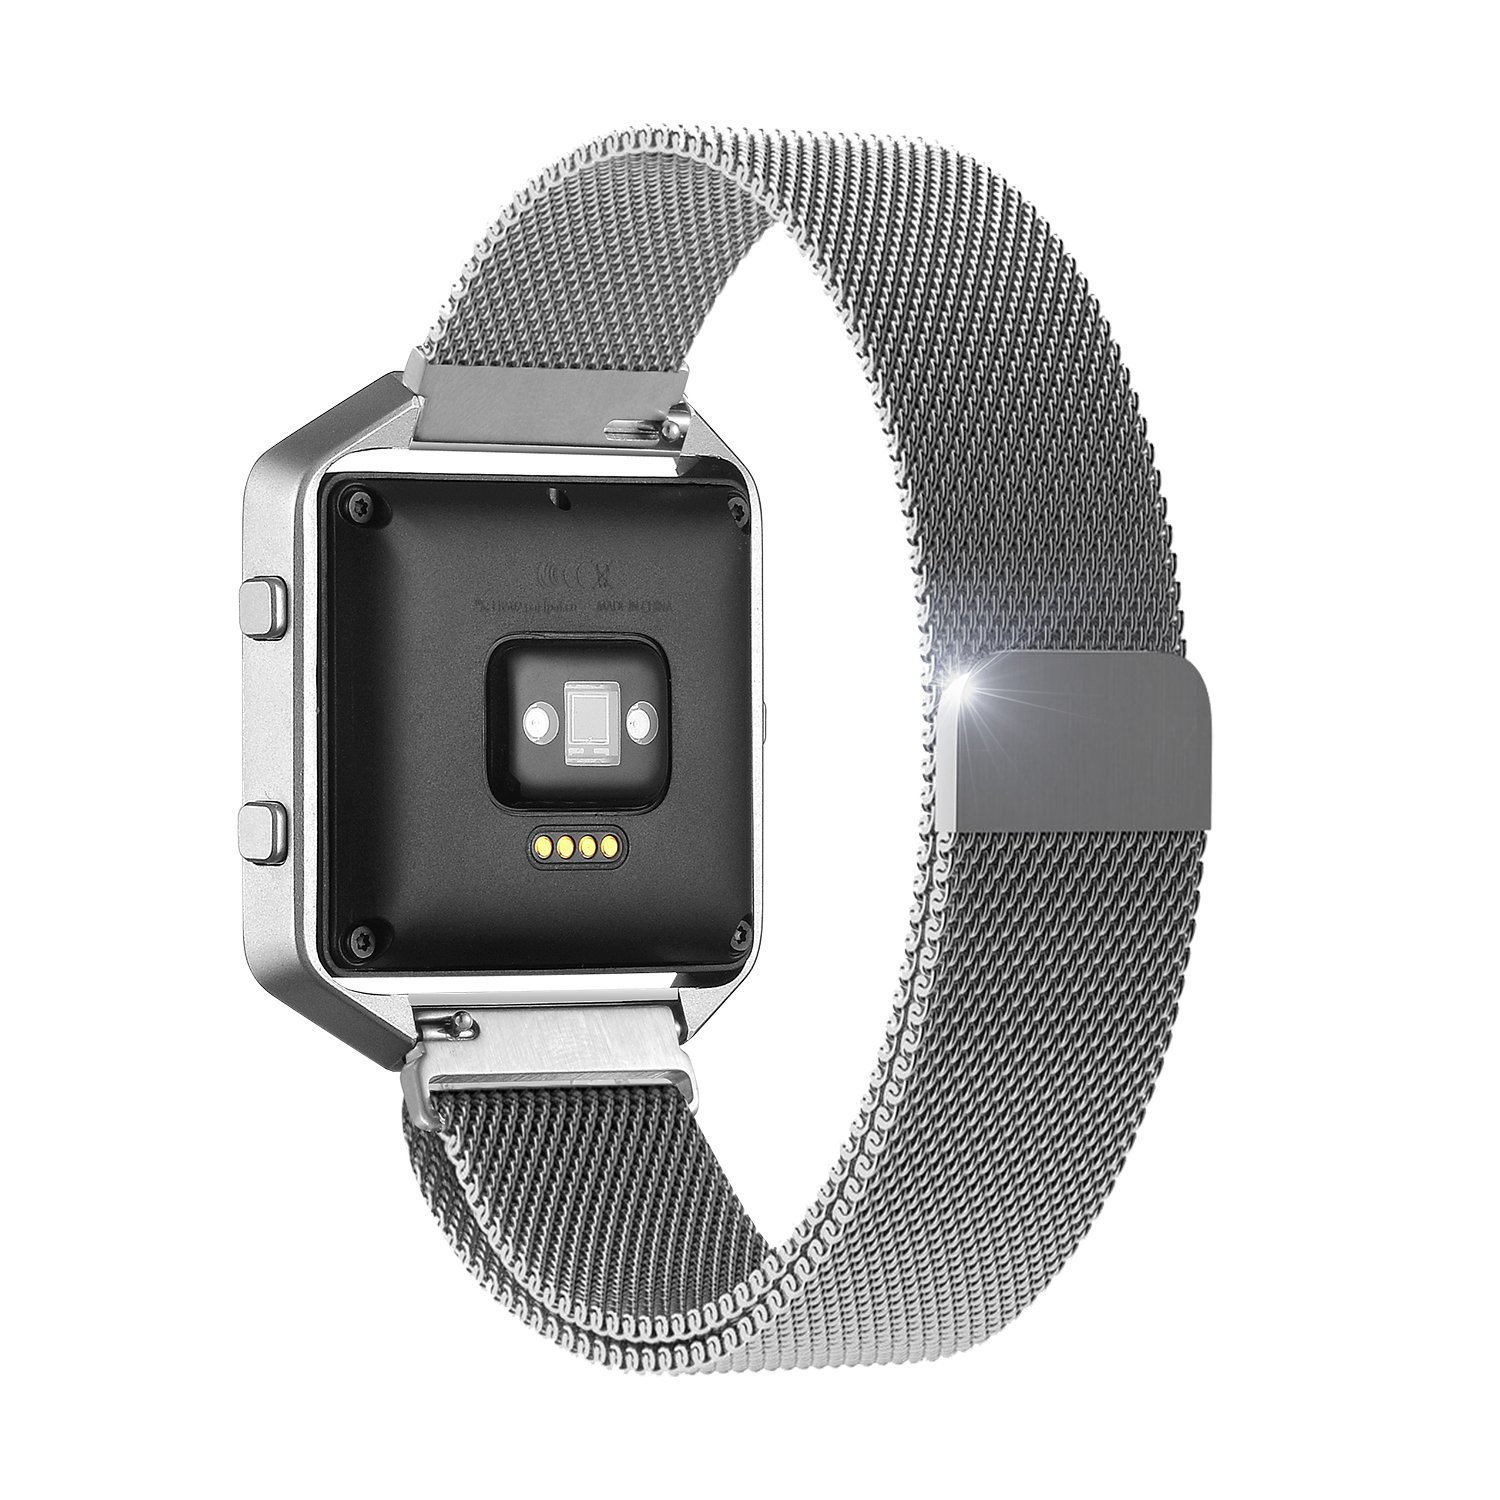 Fitbit Blaze Accessories Band Small, UMTele Plexus Milanese Loop Stainless Steel Mesh Bracelet Replacement Band Strap with Unique Magnet Lock for Fitbit Blaze Smart Fitness Watch Silver (5.1